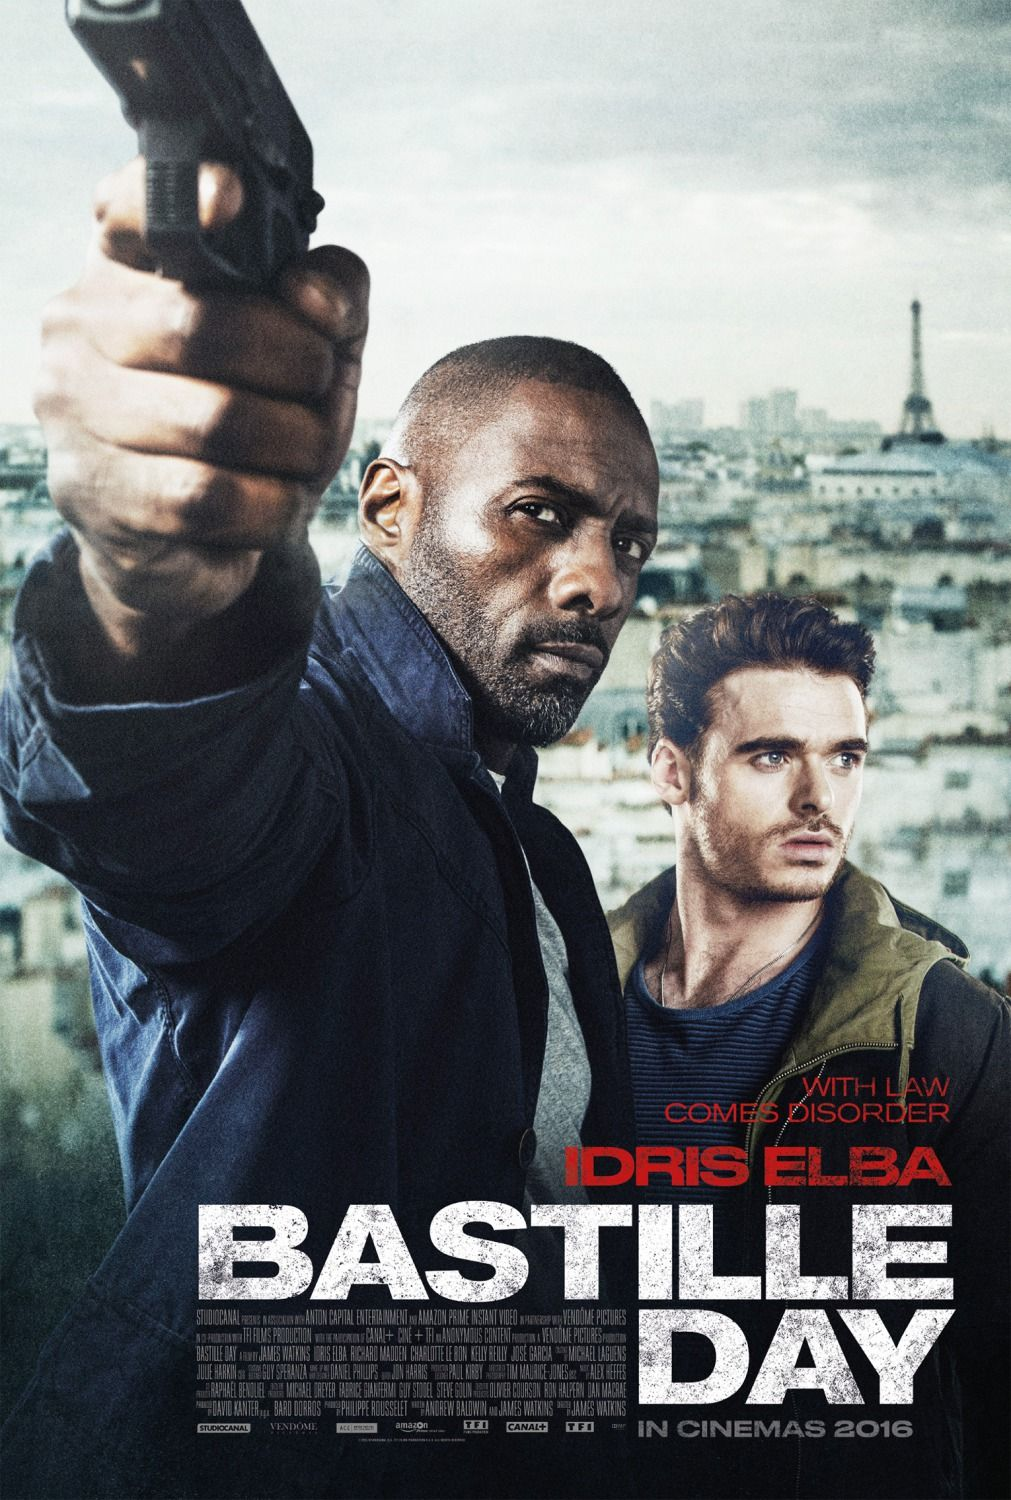 Uk Posters For Bastille Day With Idris Elba Elvis Nixon With Michael Shannon Kevin Spacey Ver Peliculas Gratis Peliculas Ver Películas Gratis Online